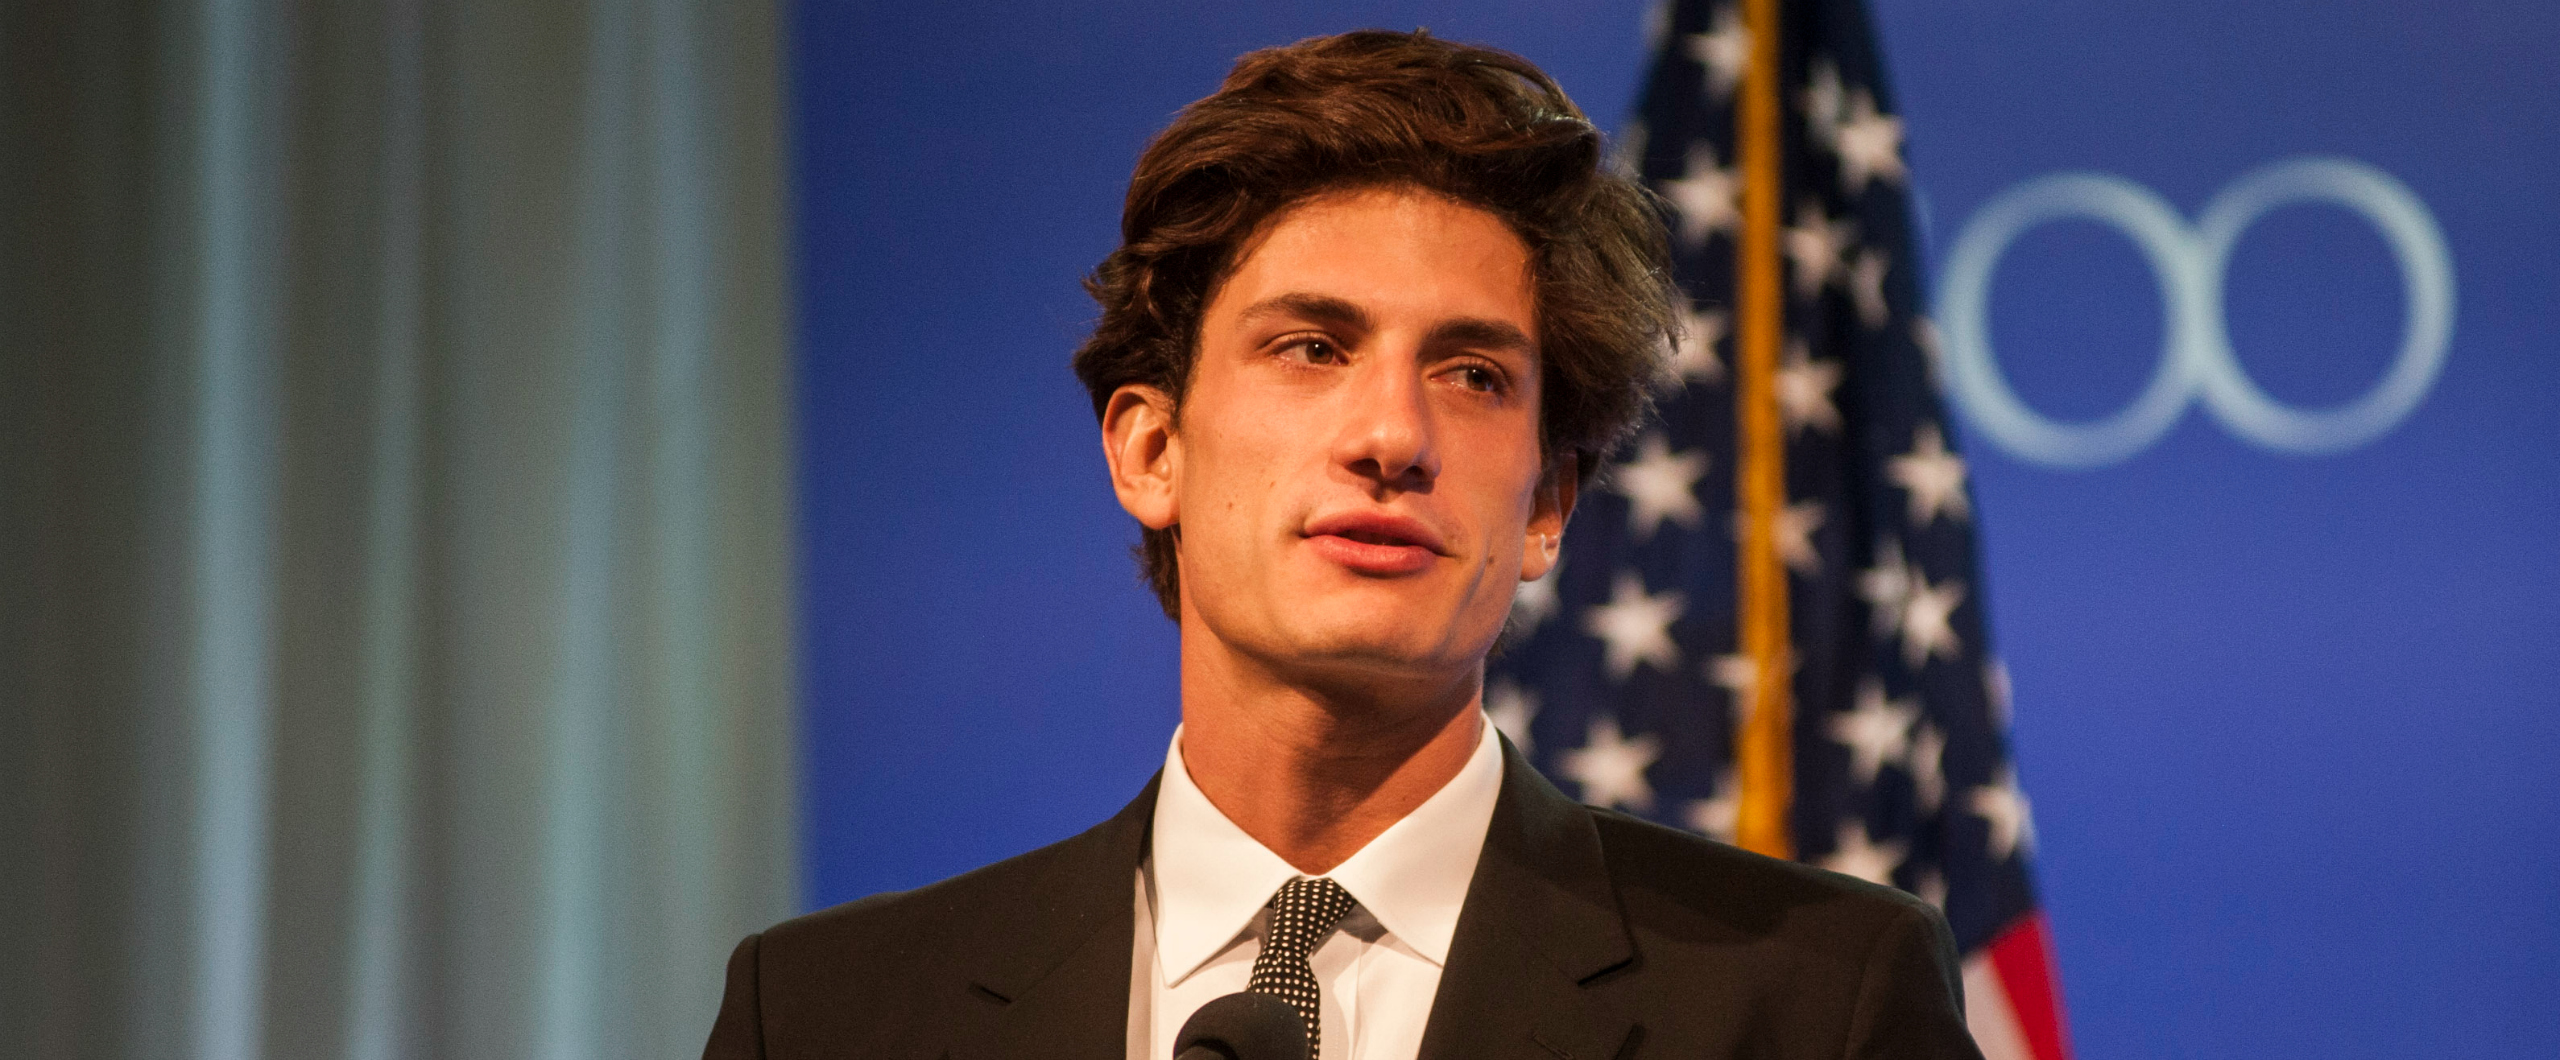 Jack Schlossberg, the Grandson of John F. Kennedy, Is Ready for his ...